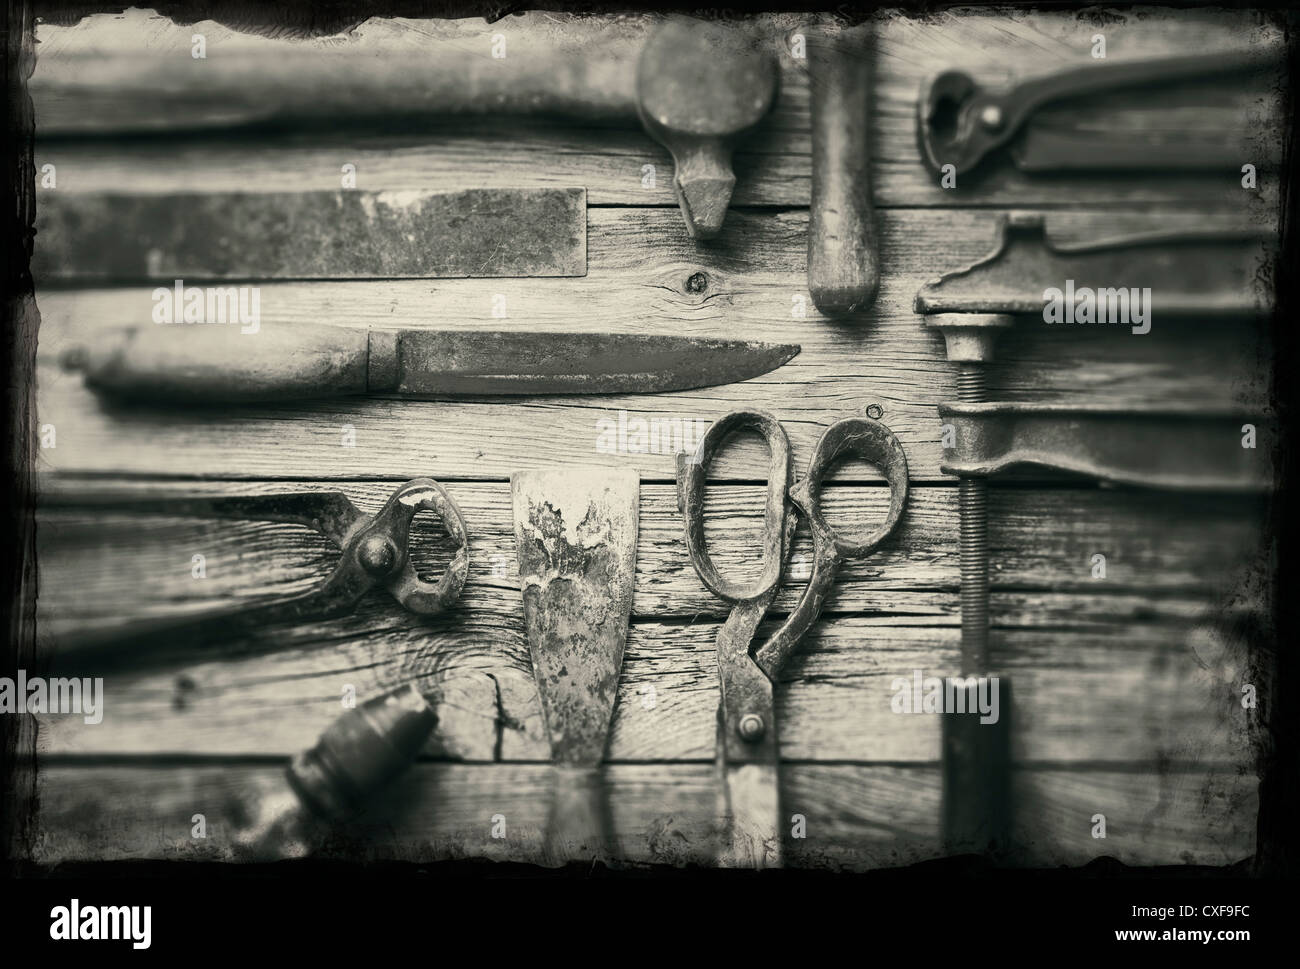 A collection of old rusty tools with grunge borders. - Stock Image